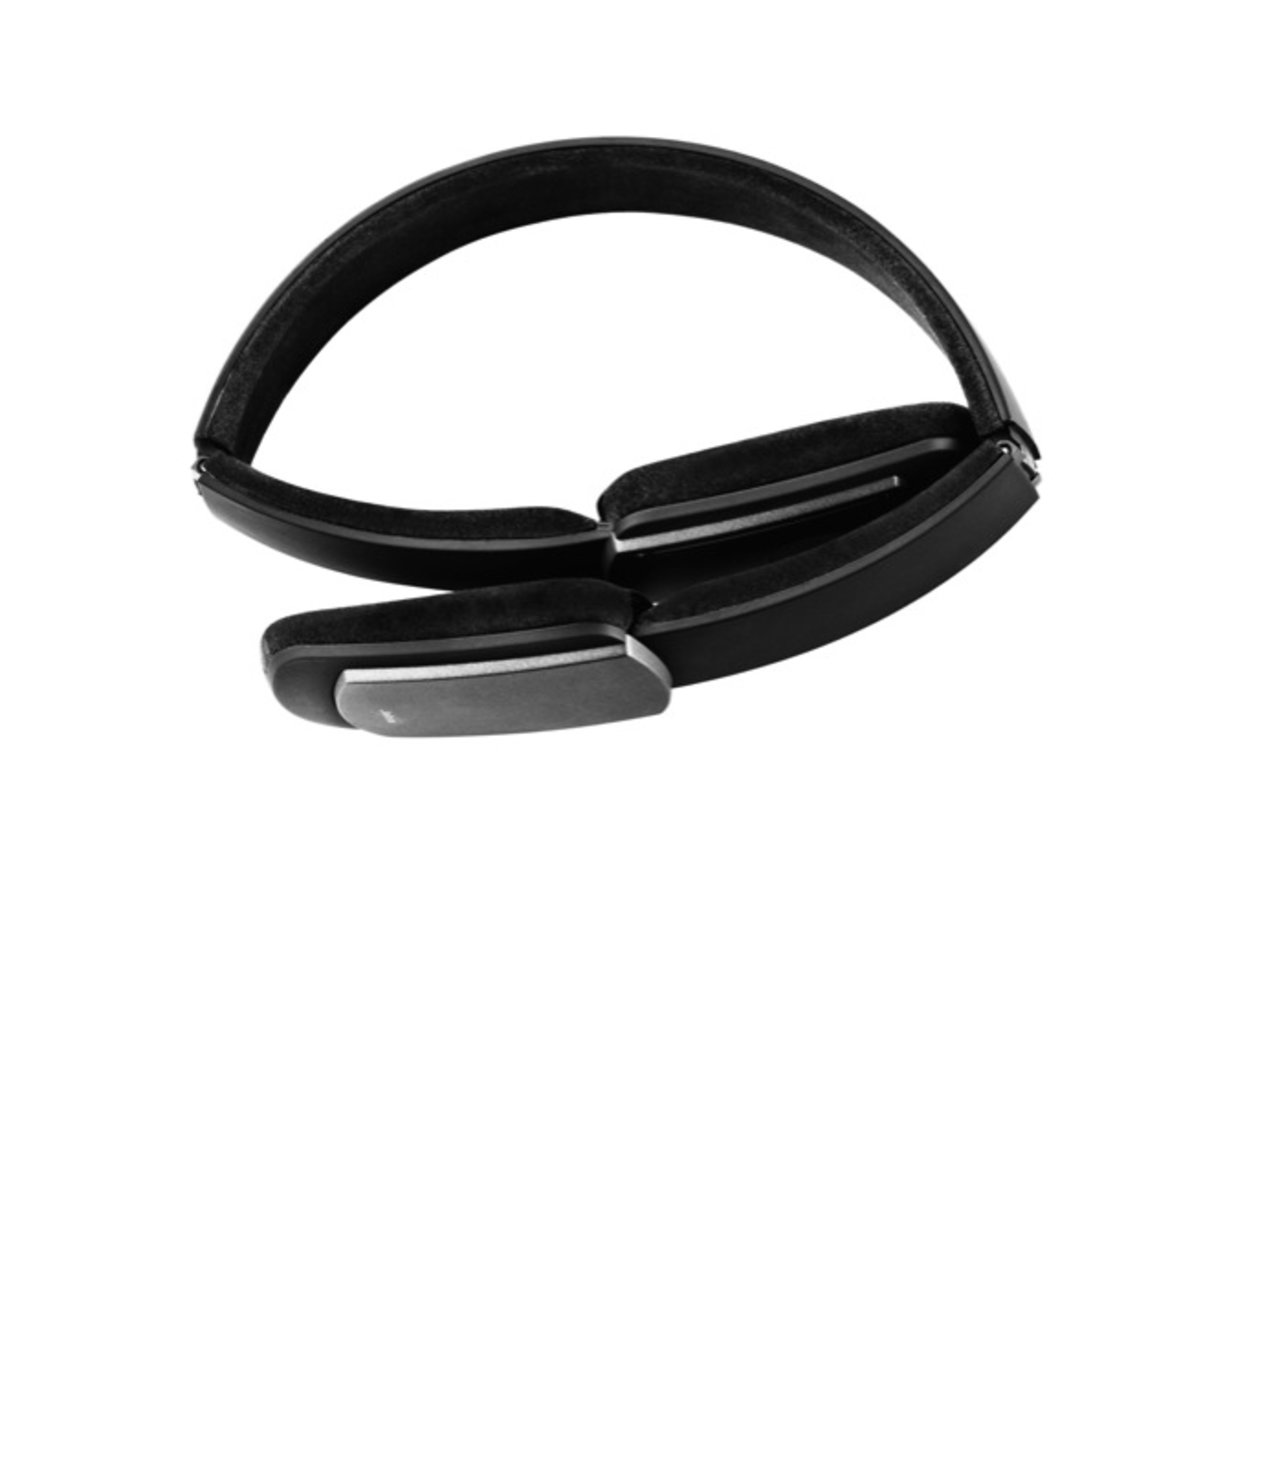 jabra bt250v bluetooth headset manual